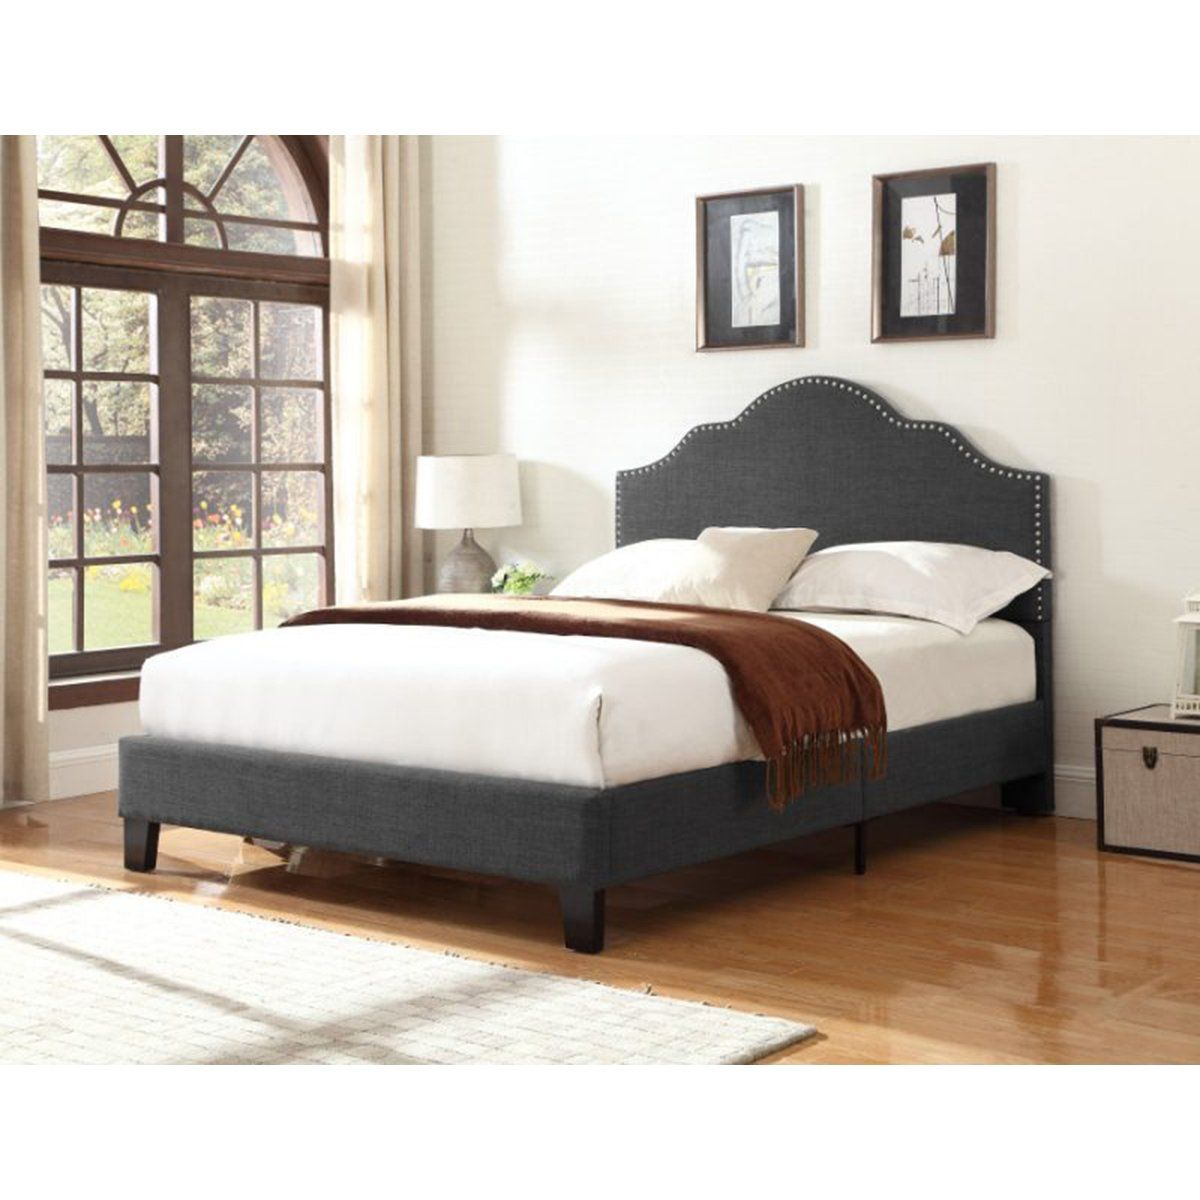 MADISON COMPLETE UPHOLSTERED BED - Showhome Furniture